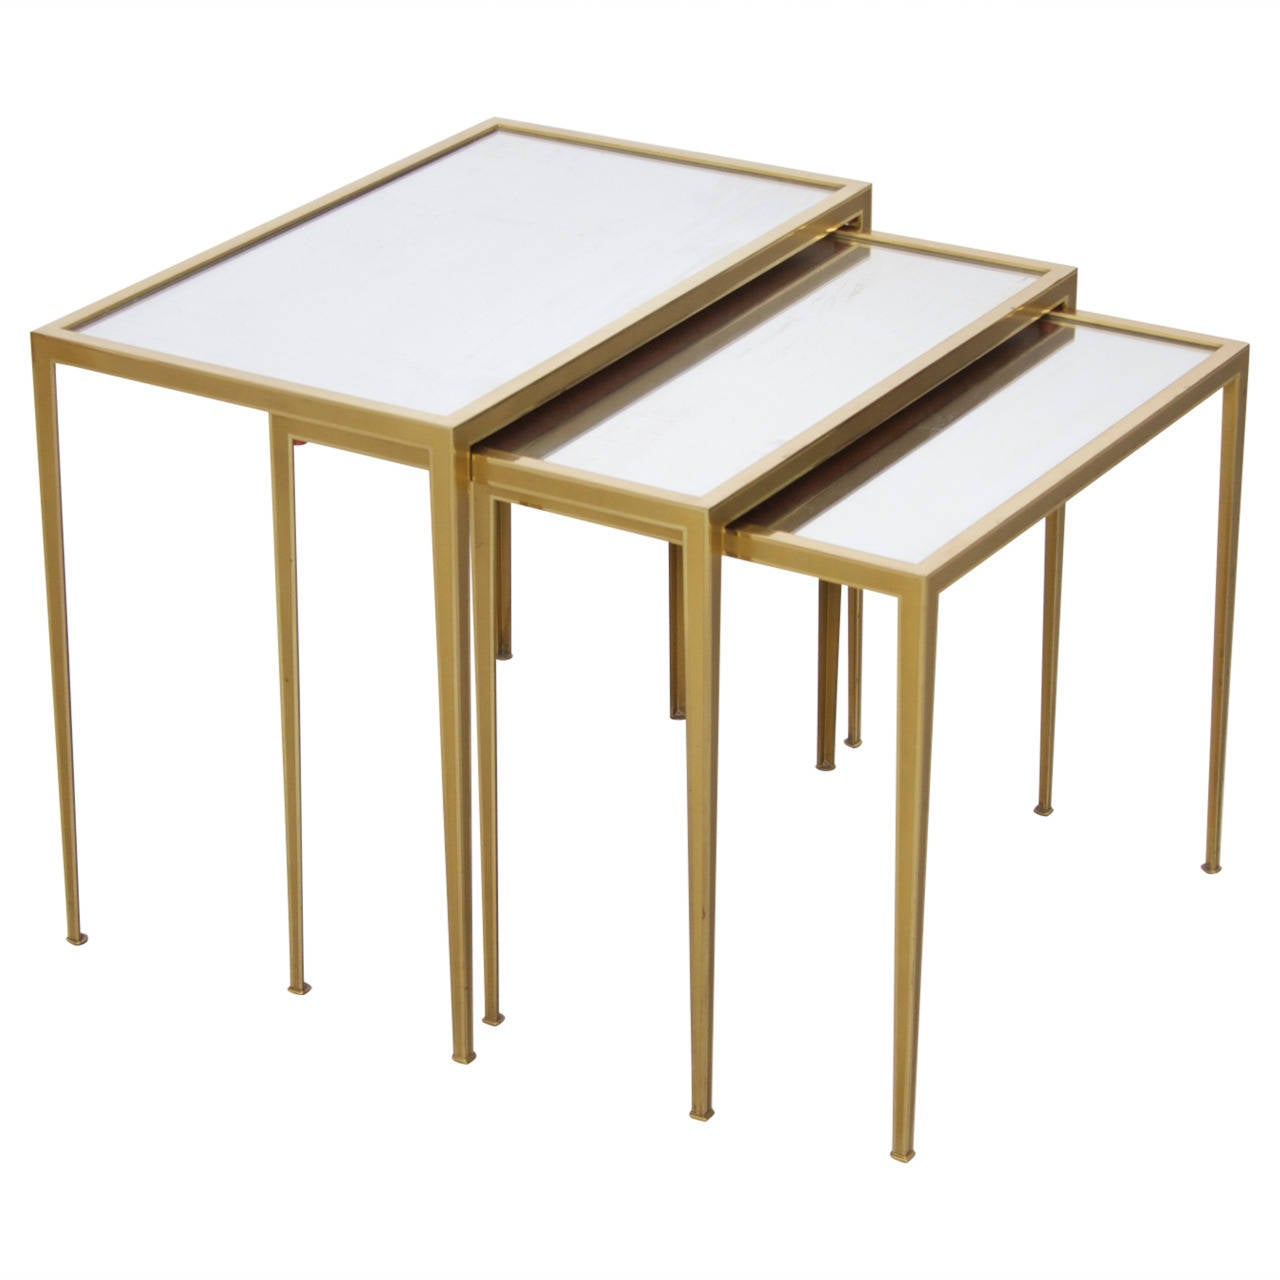 Attractive Set Of Three Münchner Werkstätten Brass And Mirror Glass Nesting Tables 1